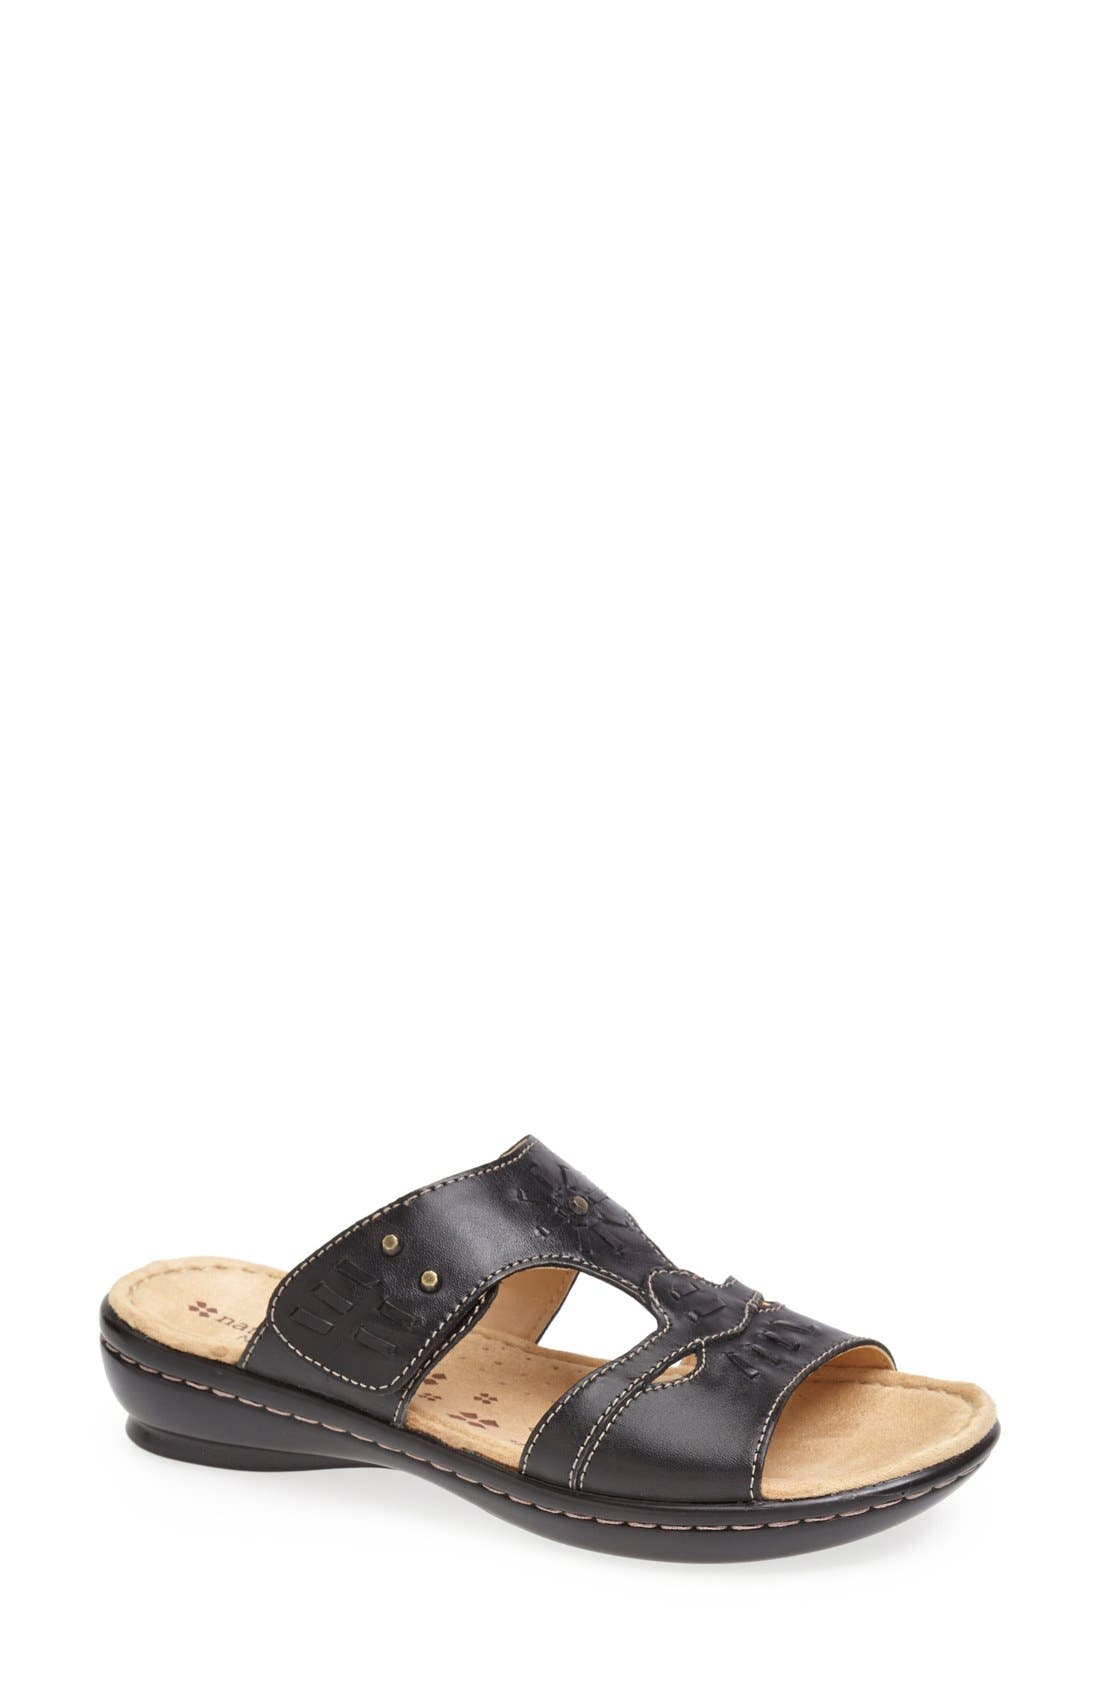 Alternate Image 1 Selected - Naturalizer 'Jalisa' Sandal (Women)